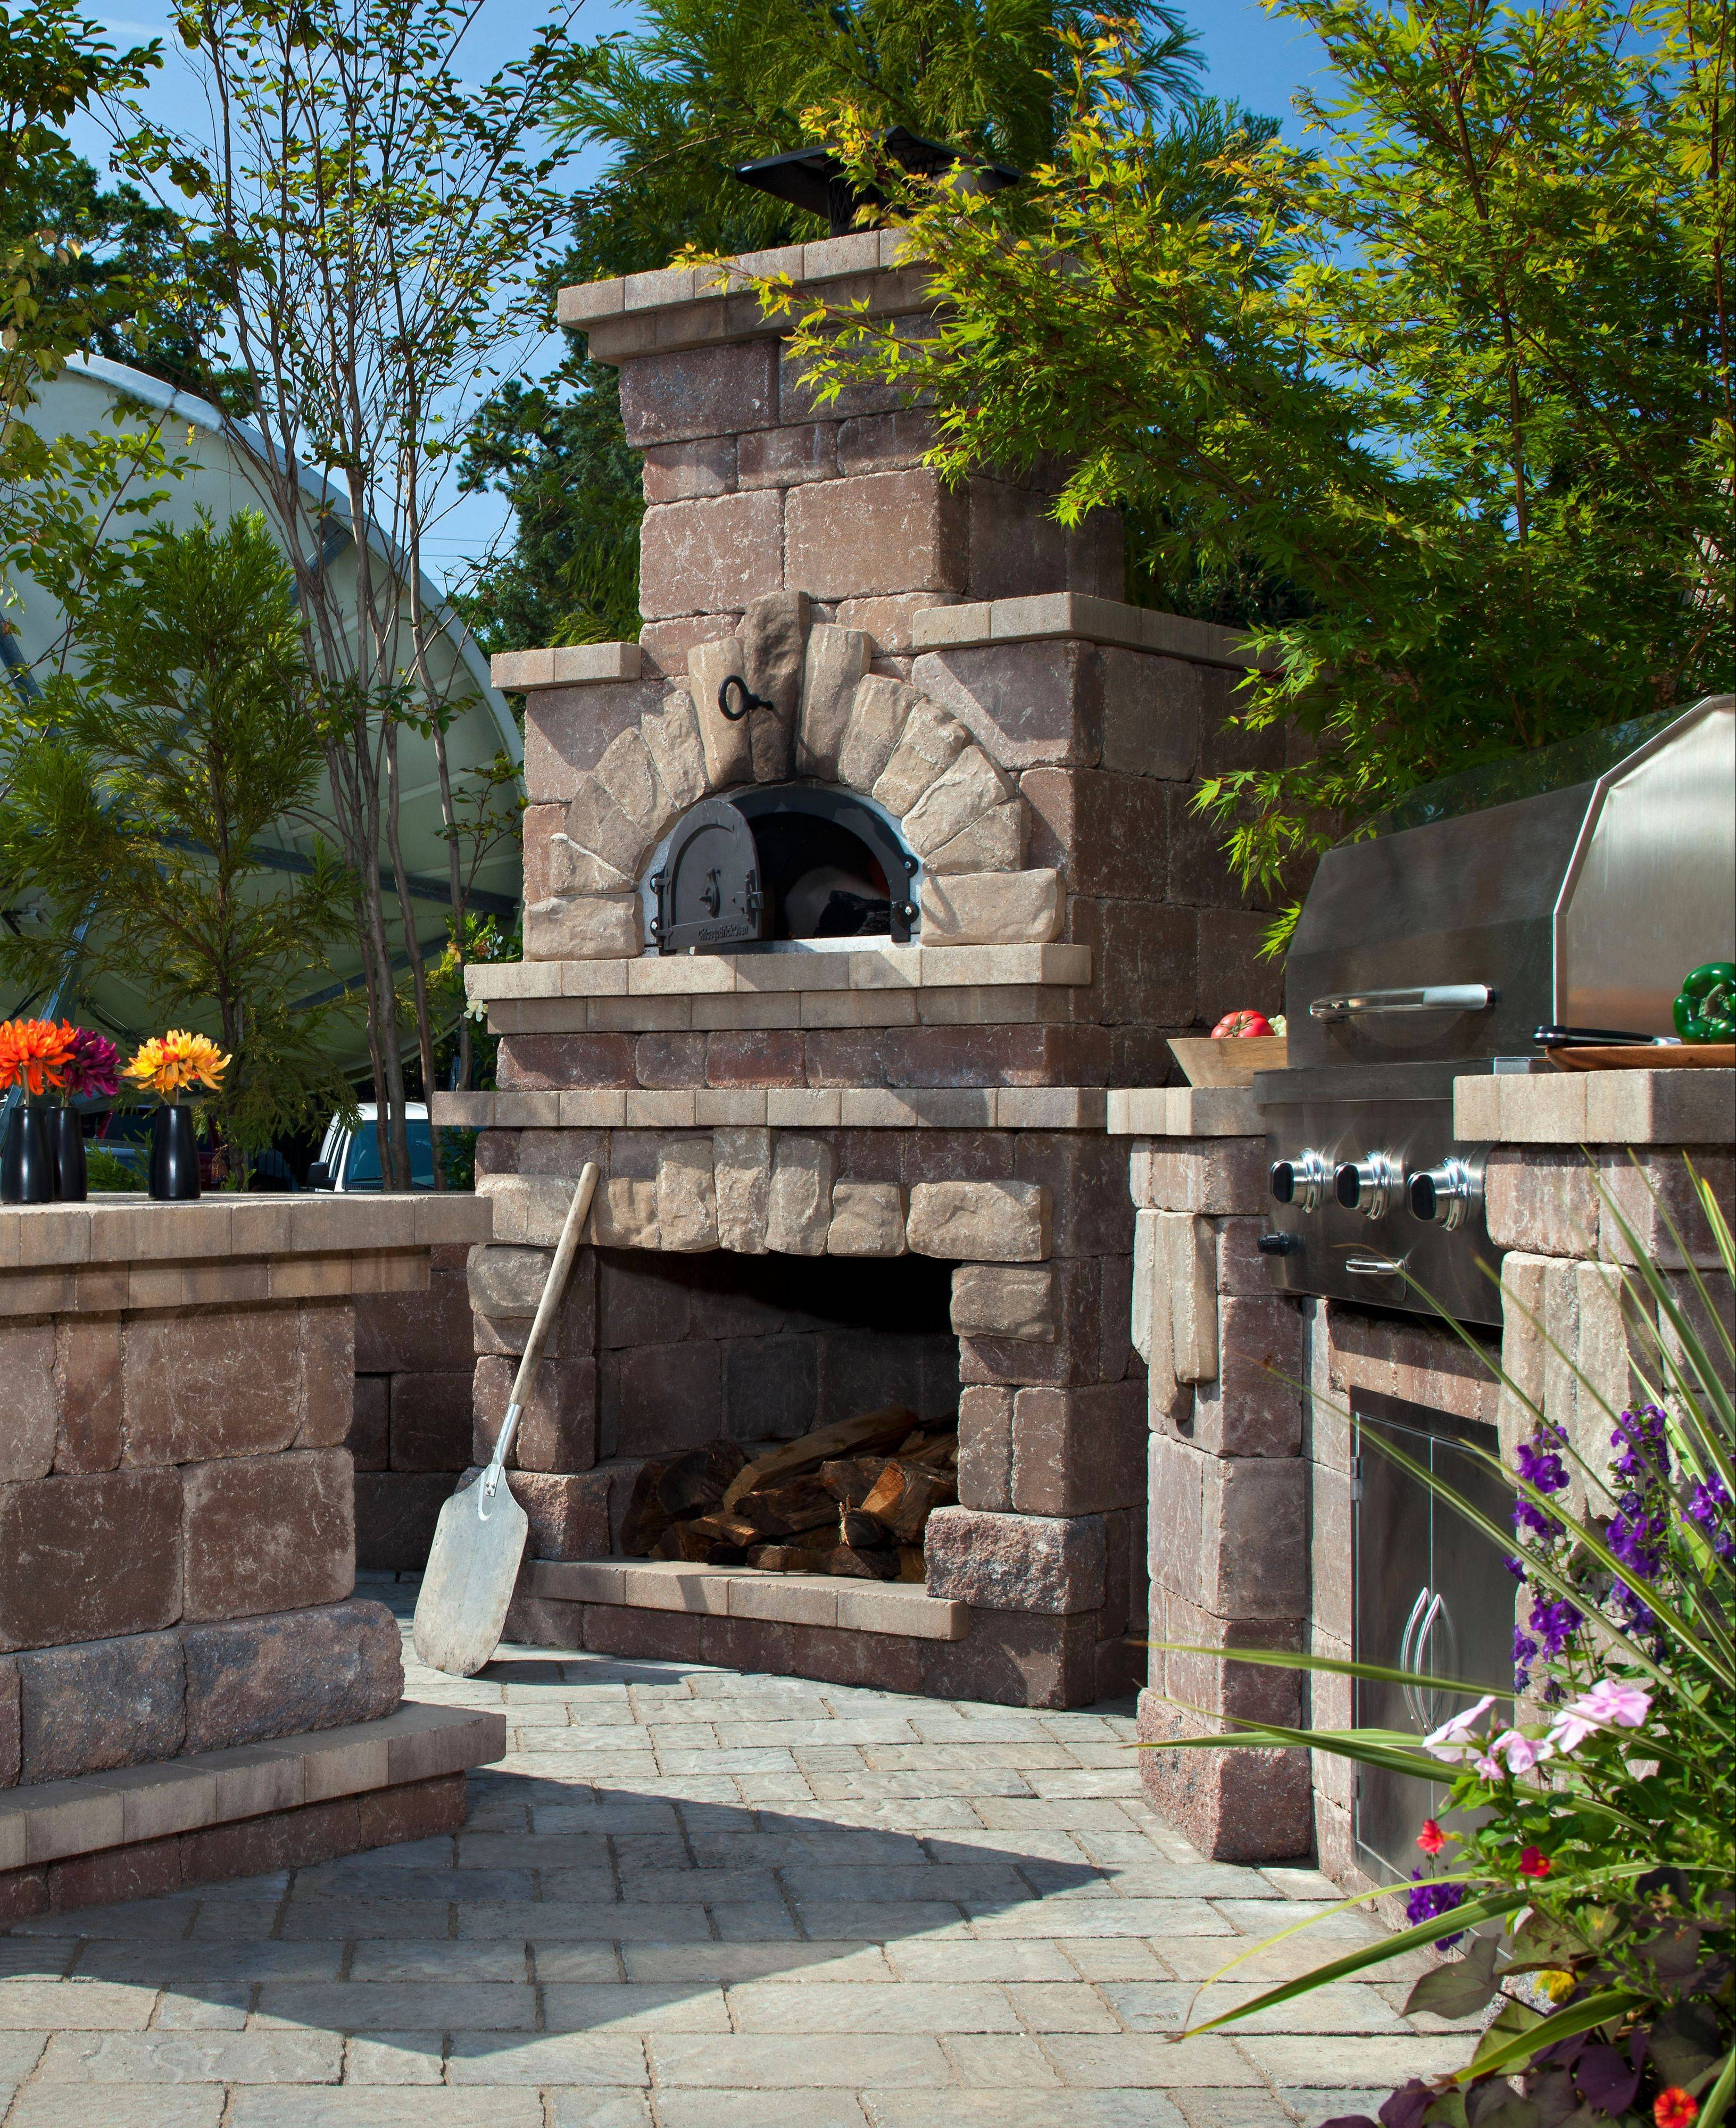 Belgard supplies outdoor brick ovens, popular for cooking turkeys, chickens, bread, briskets and of course, pizza.